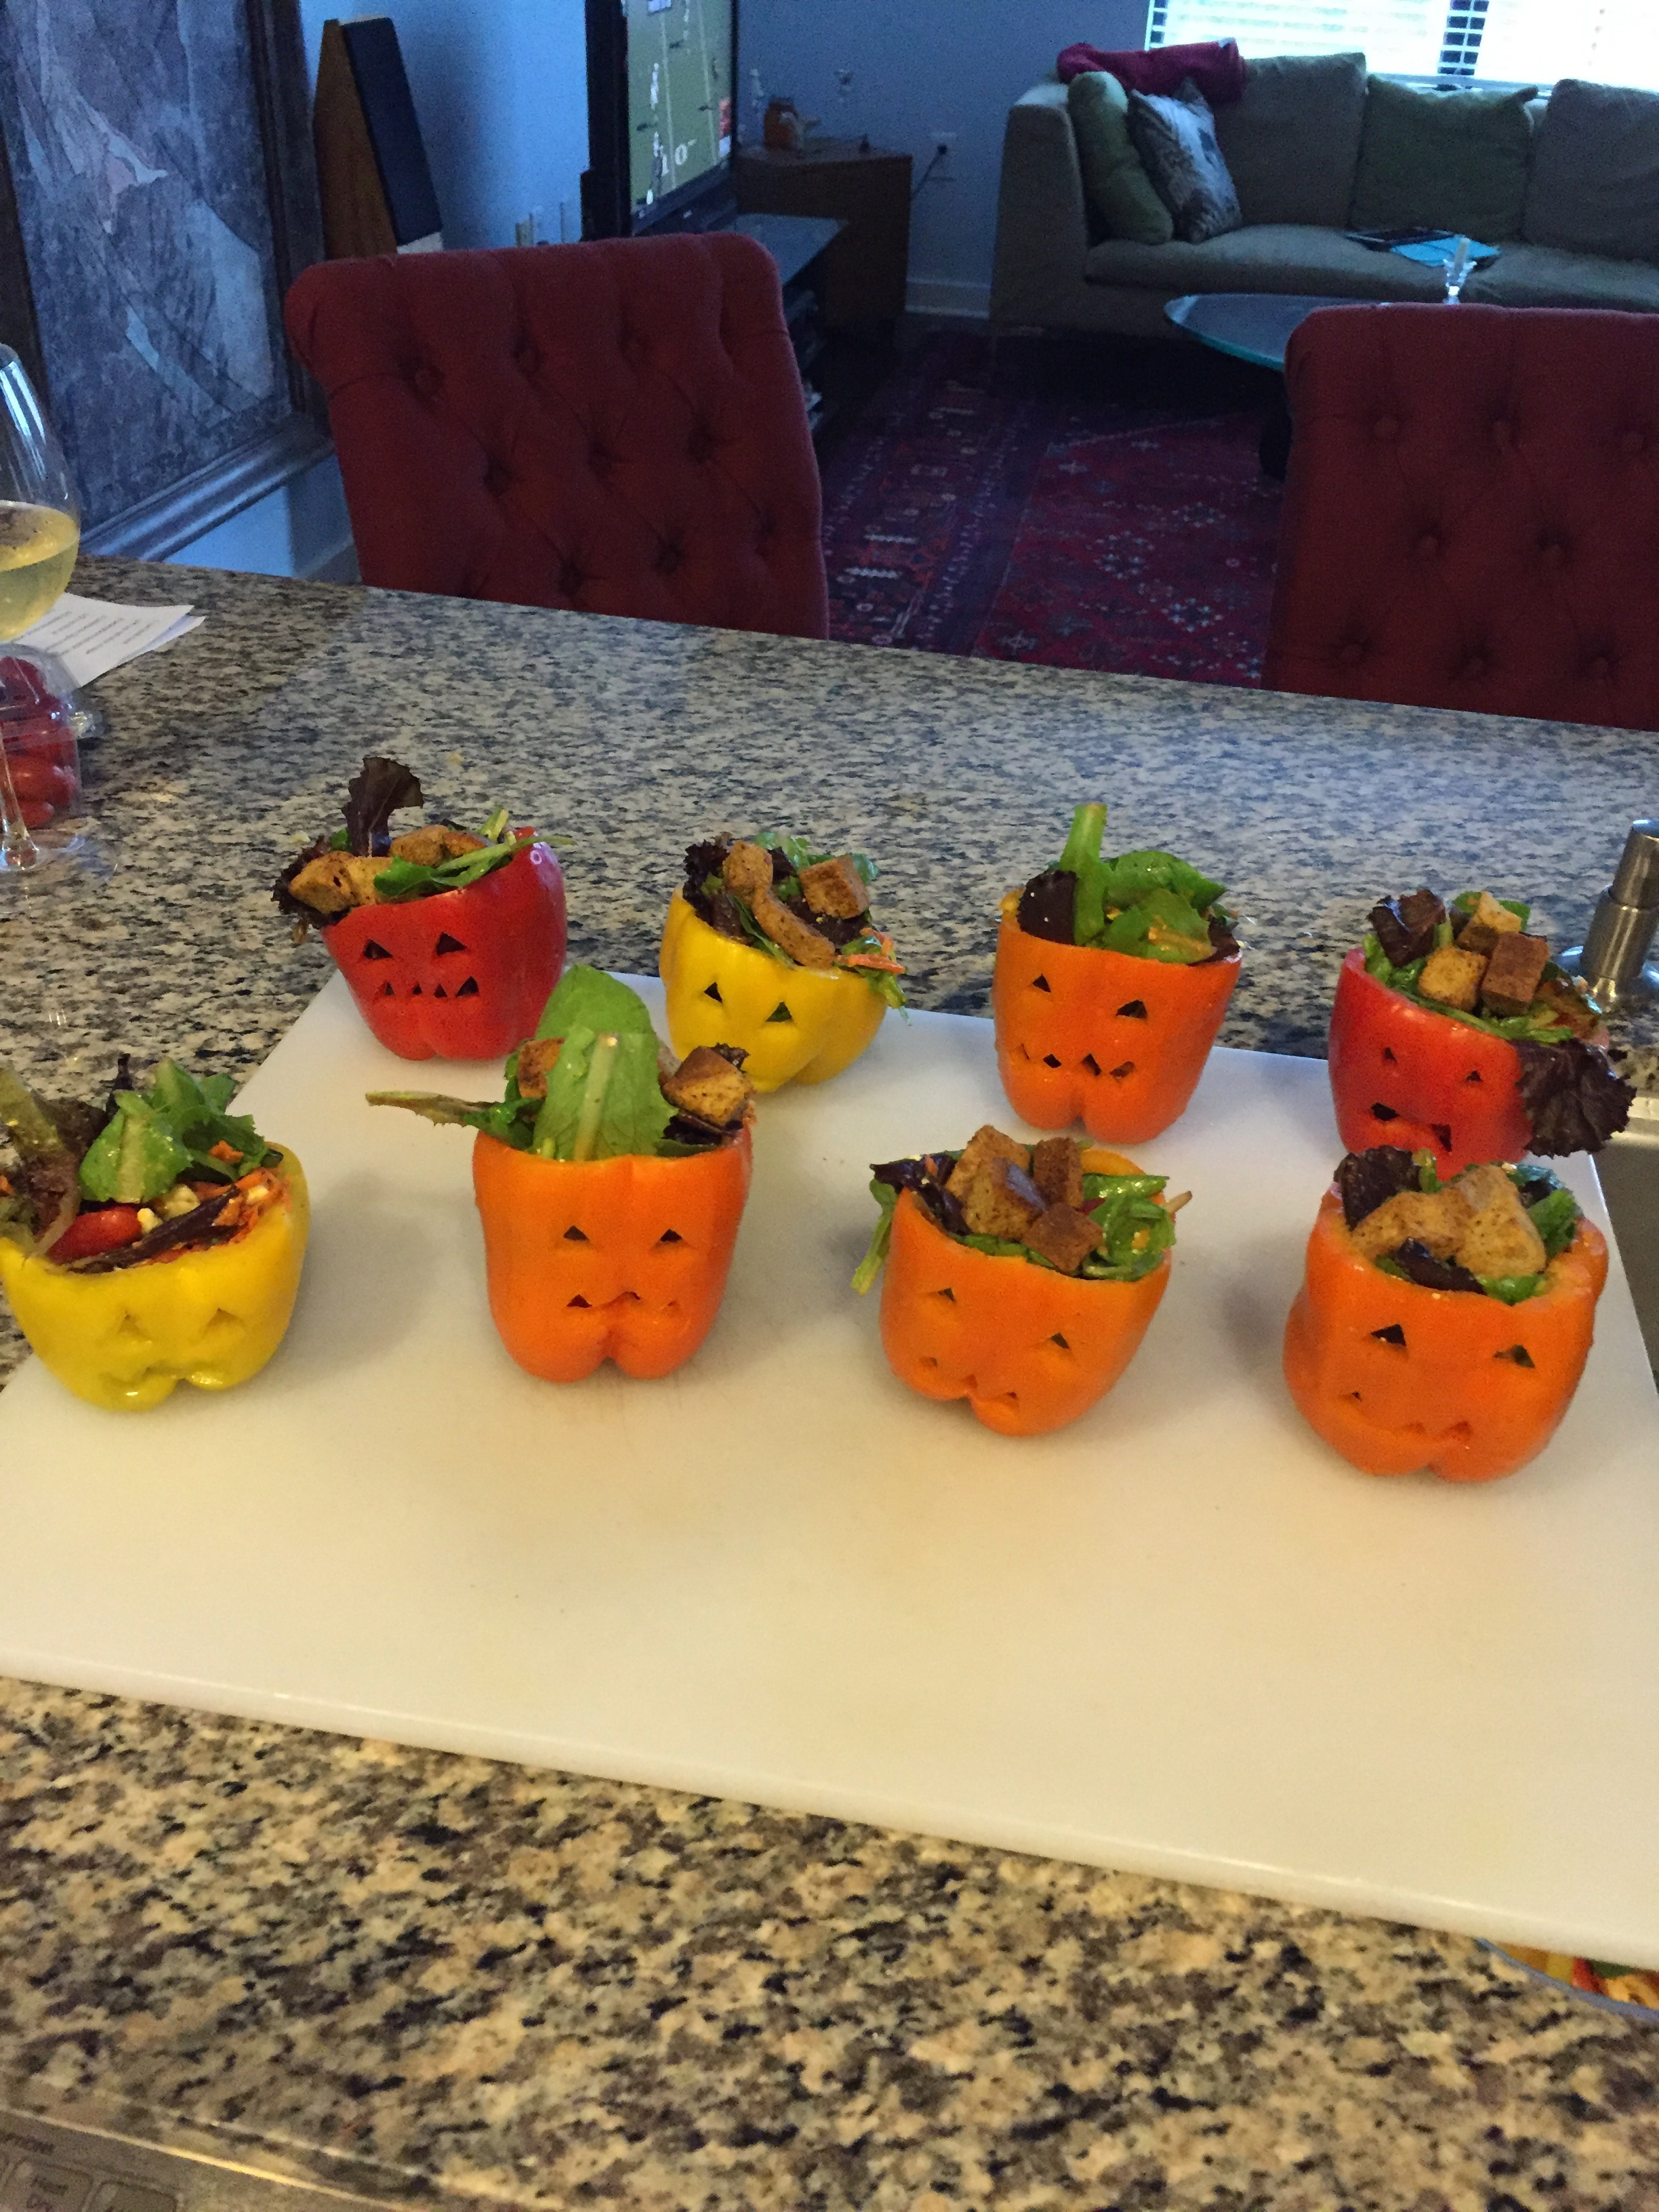 Salads In Carved Out Jack O' Lantern Peppers